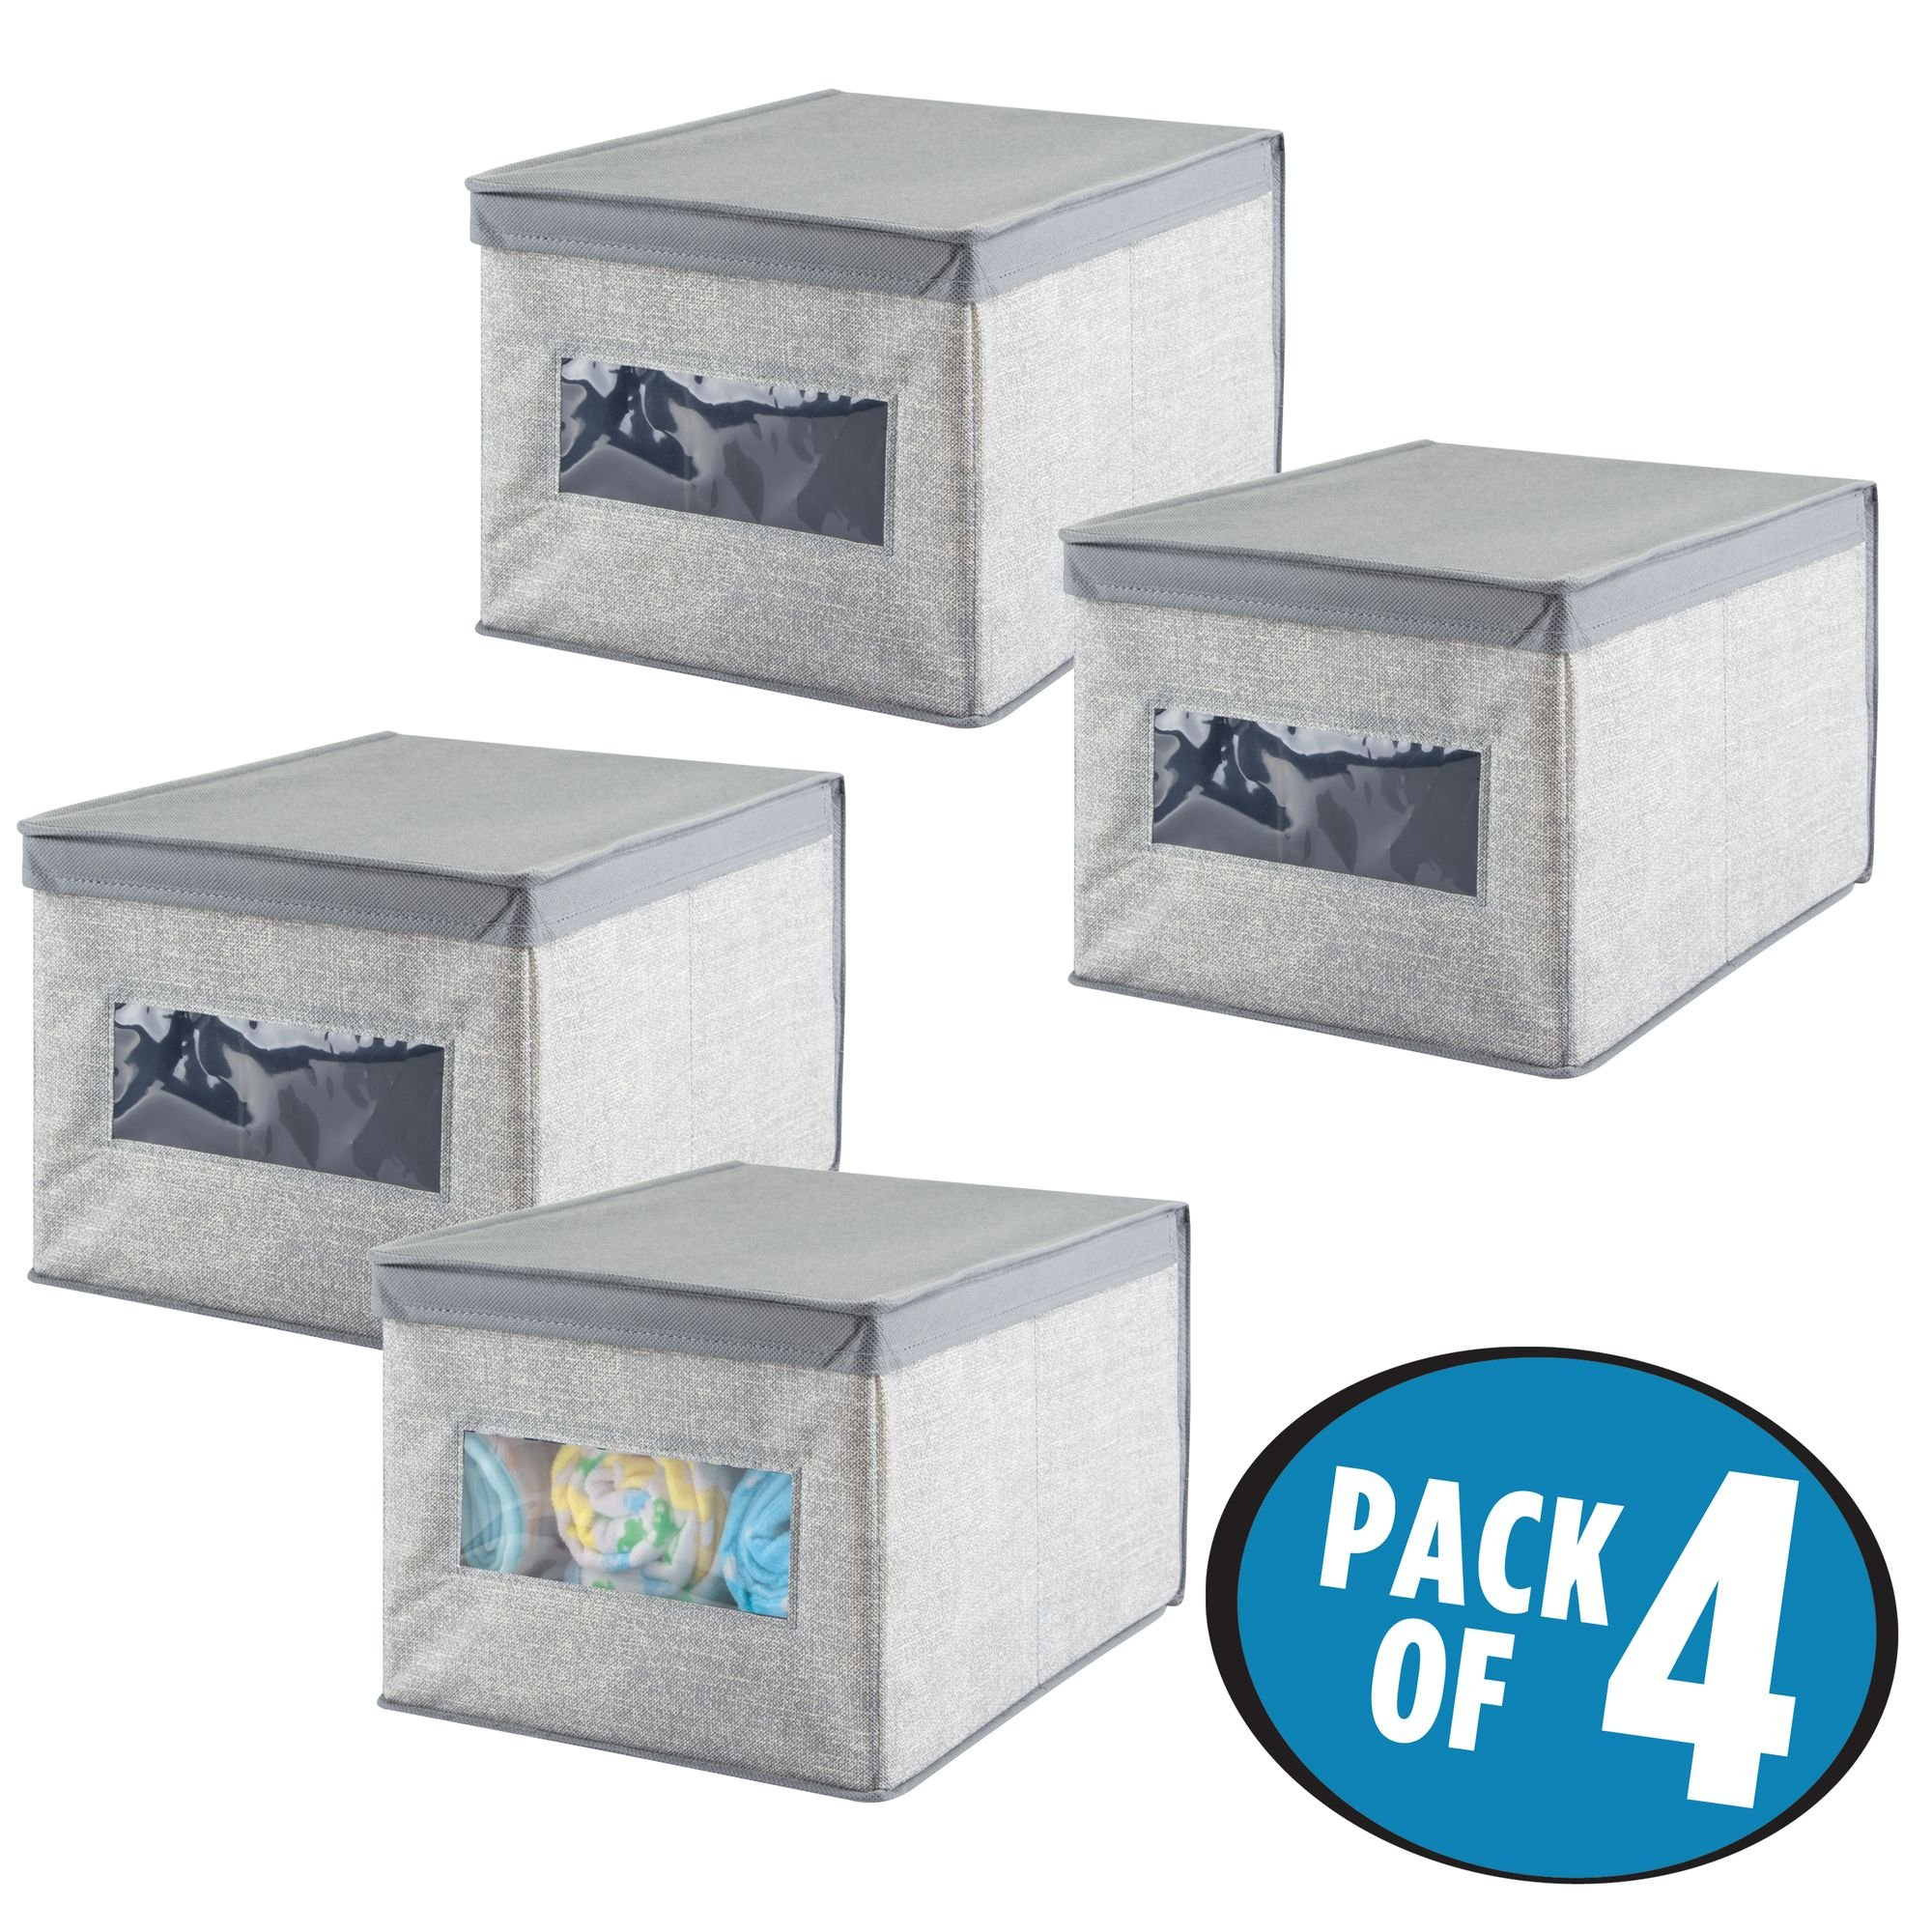 mDesign Soft Stackable Fabric Closet Storage Organizer Holder Box - Clear Window, Attached Hinged Lid, for Child/Baby Room, Nursery, Playroom – Textured Print - Large, Pack of 4, Gray